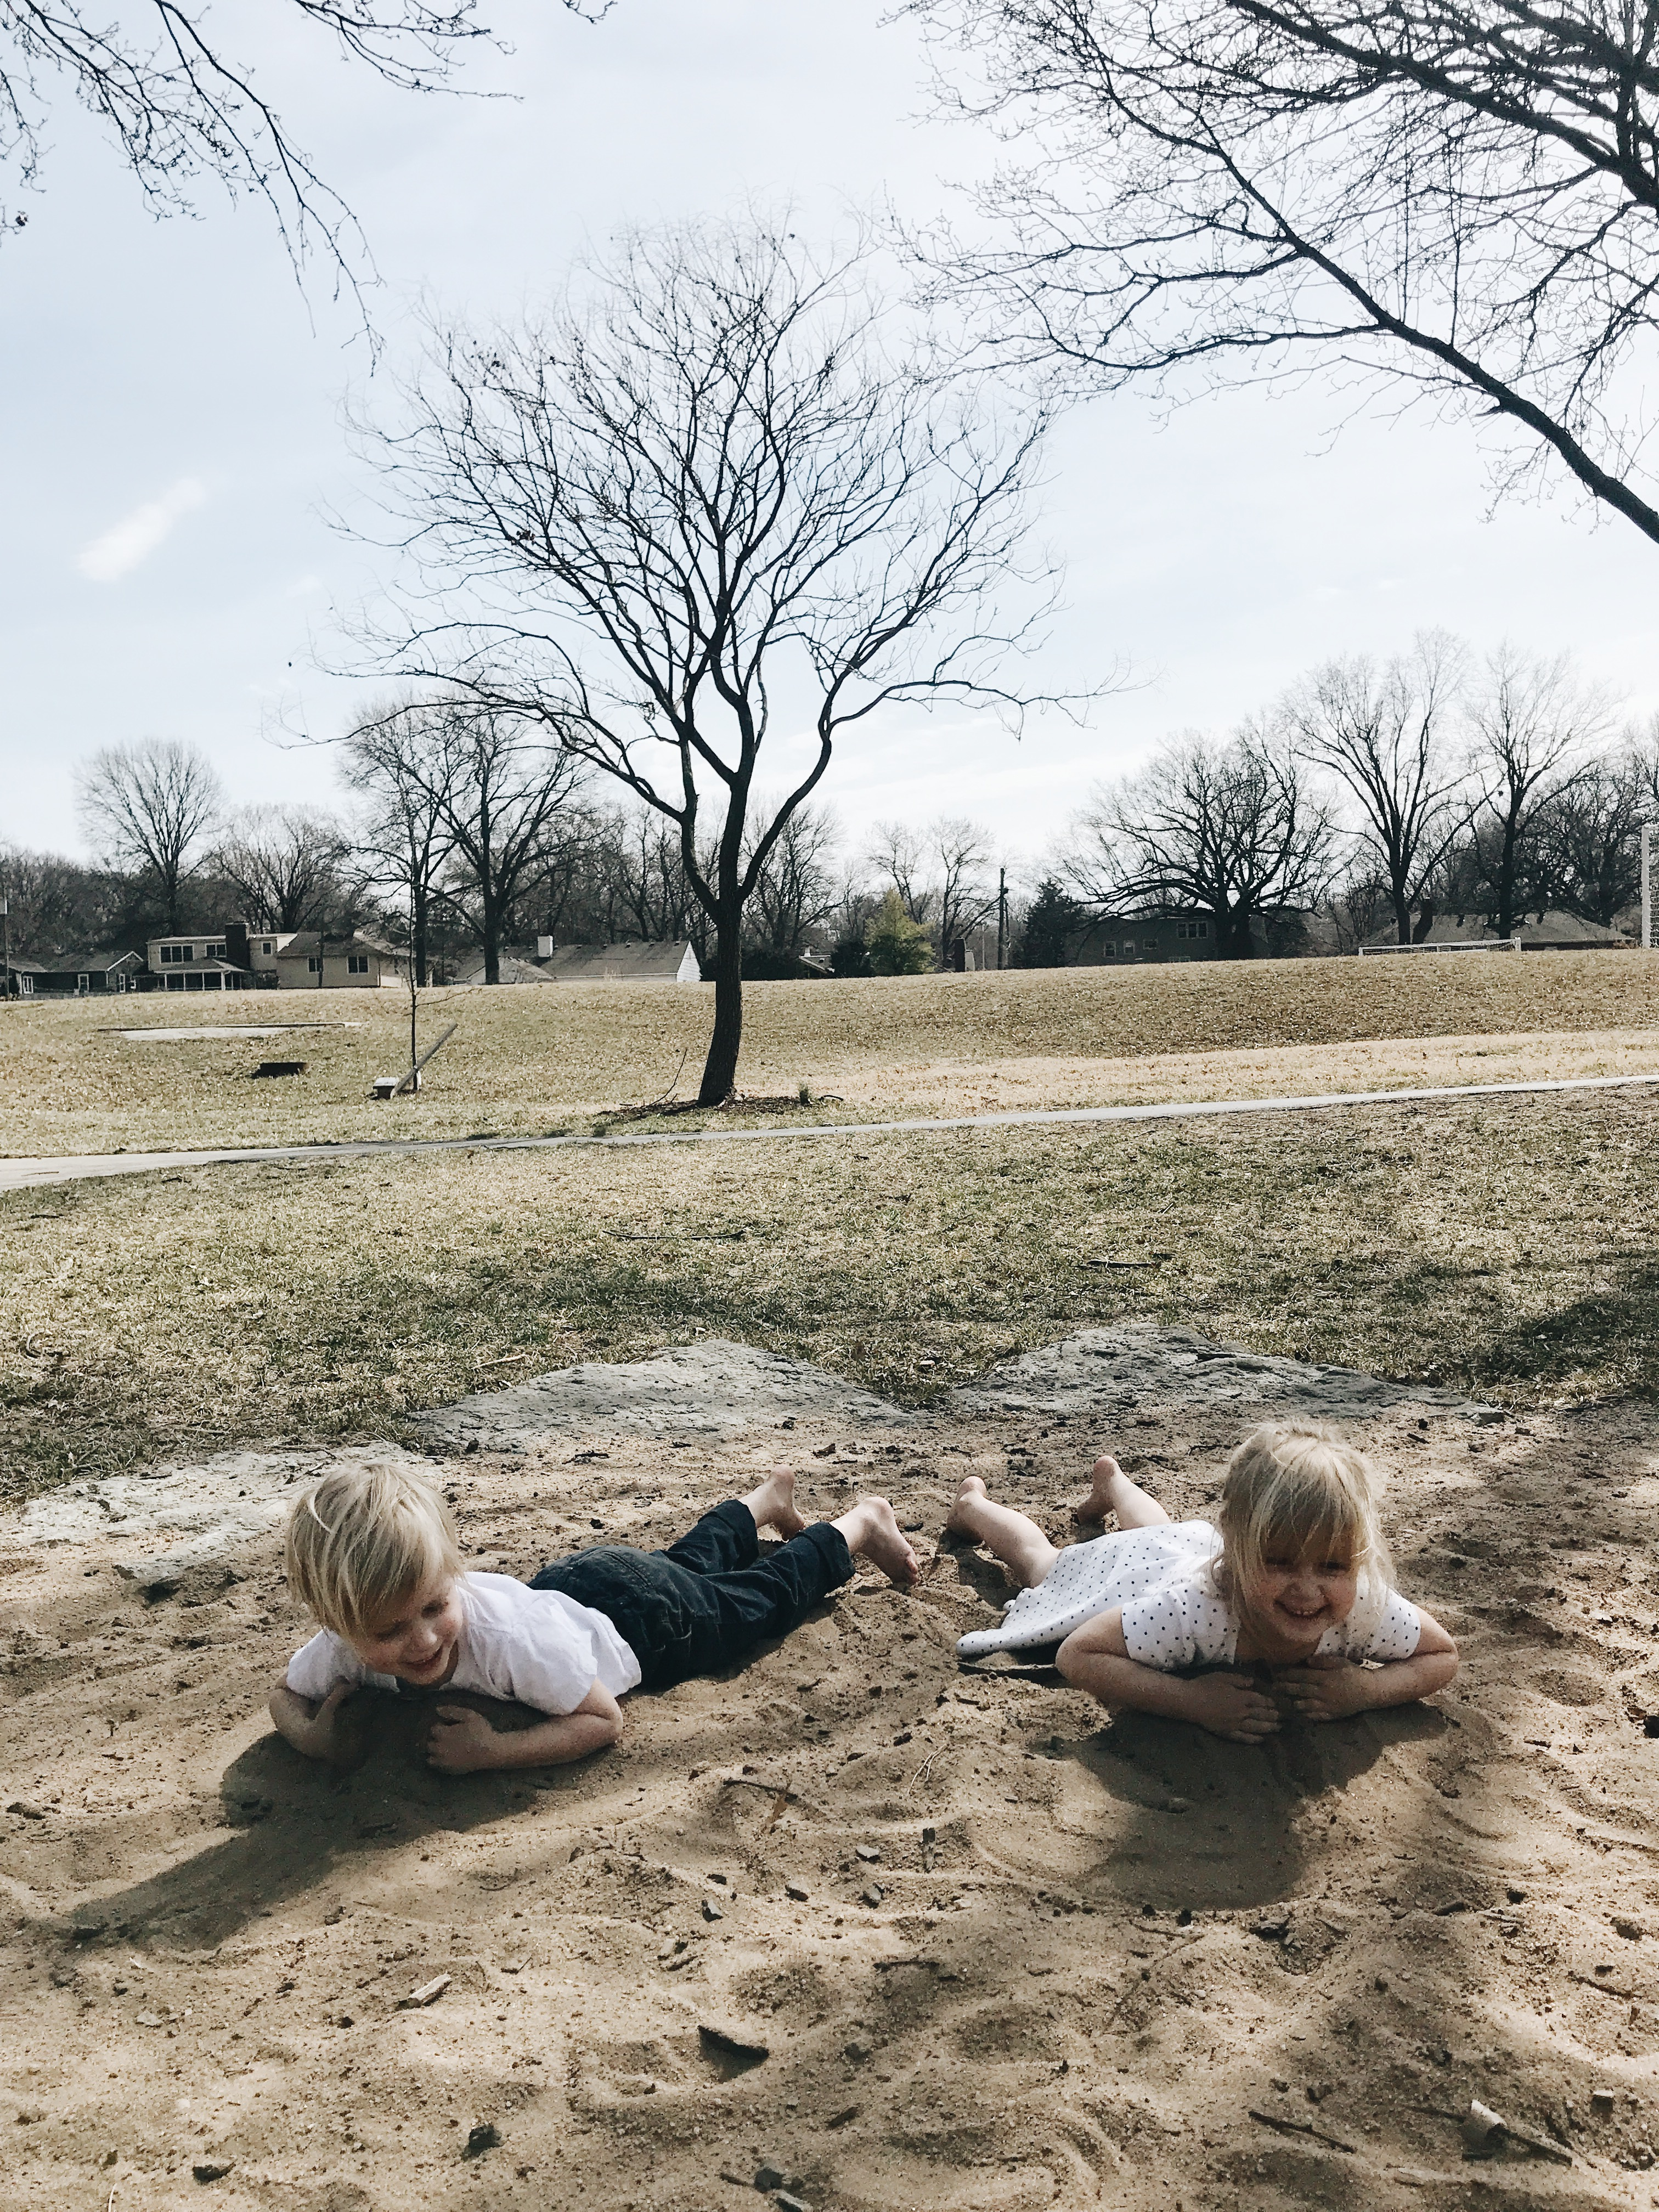 kids in white clothing in sand pit